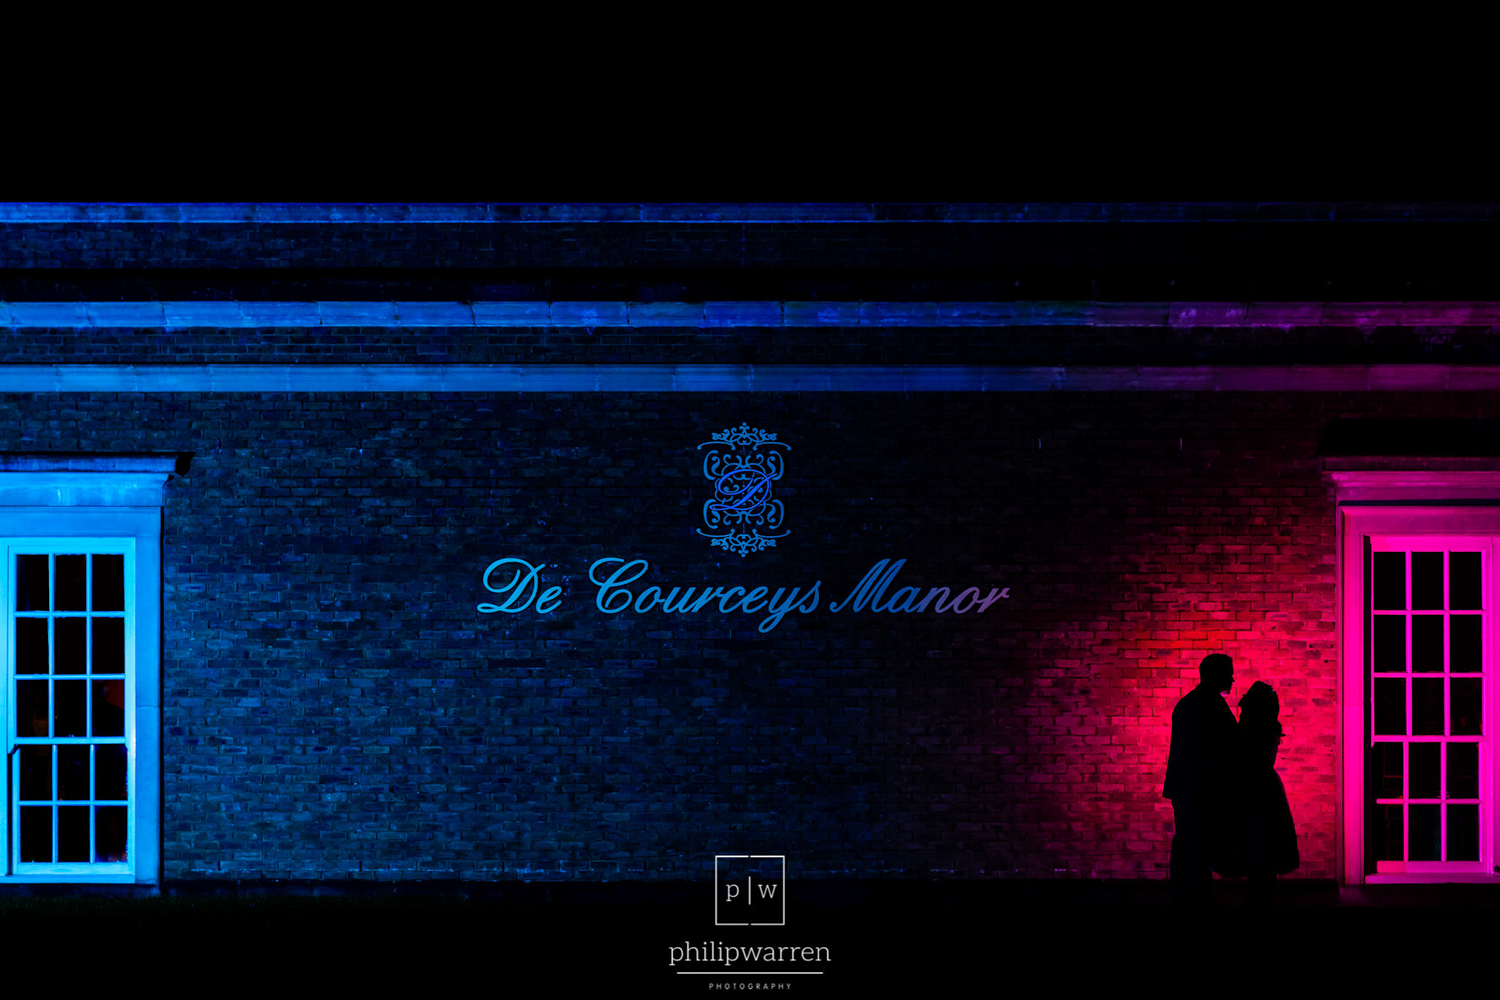 silhoute of bride and groom outside de courceys manor